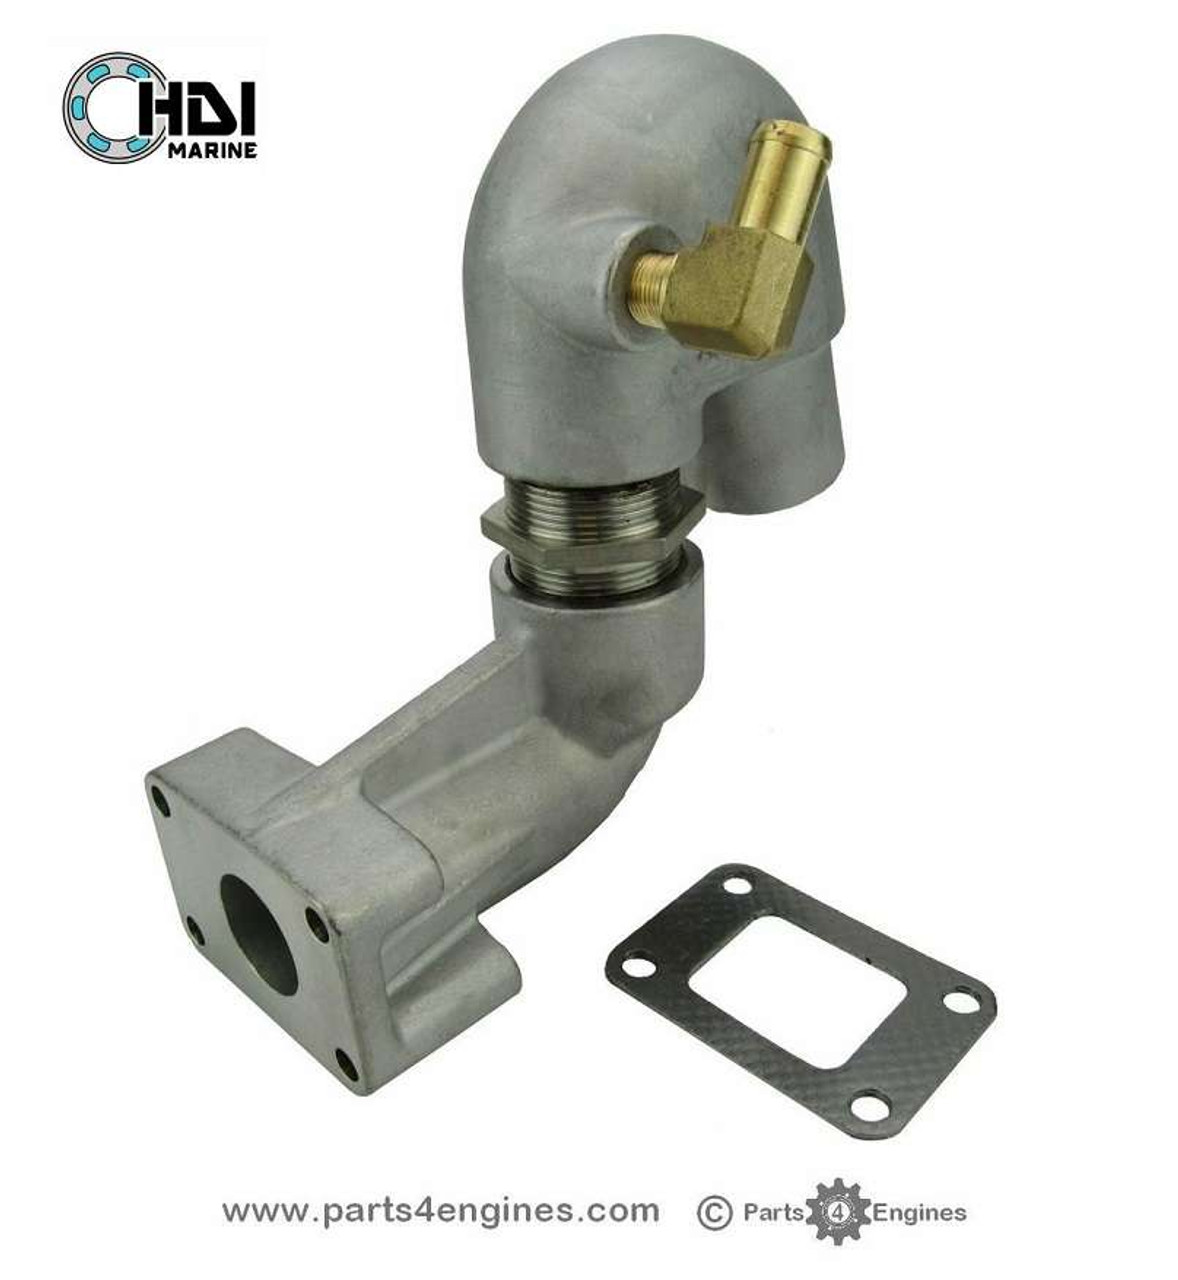 Yanmar  3GM30 Stainless Steel Exhaust outlet - parts4engines.com